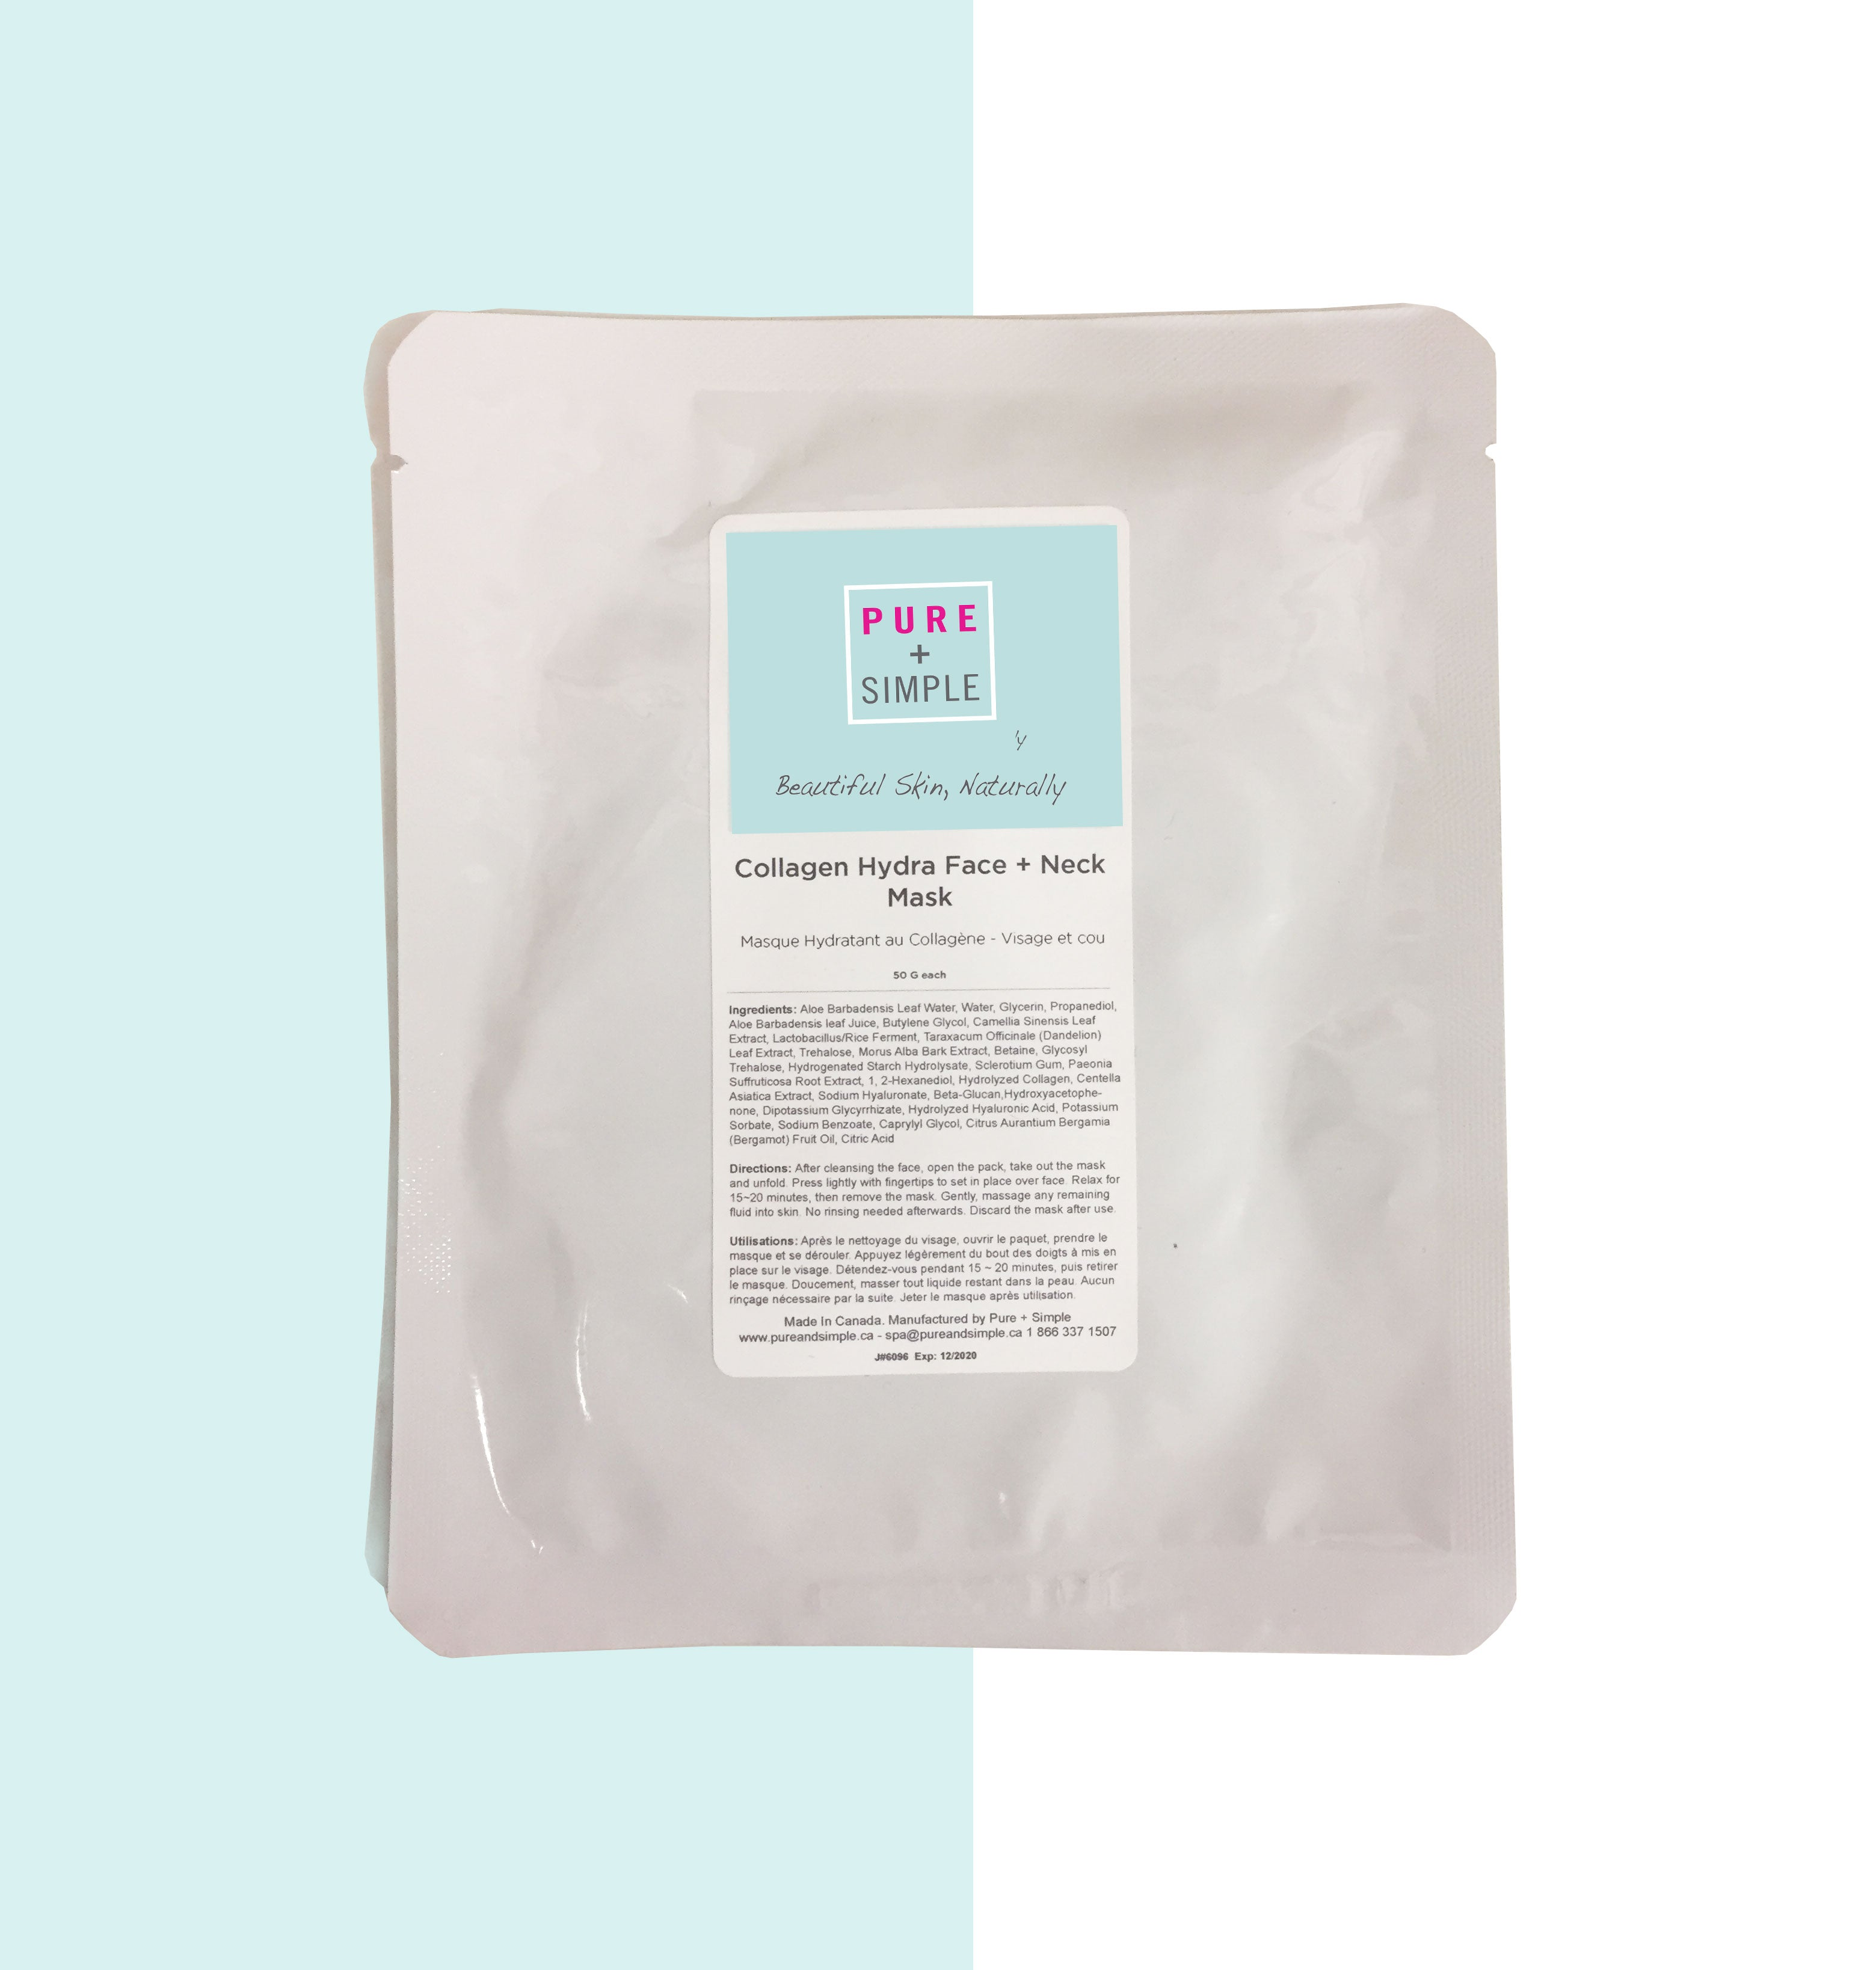 Collagen Hydra Face and Neck Mask